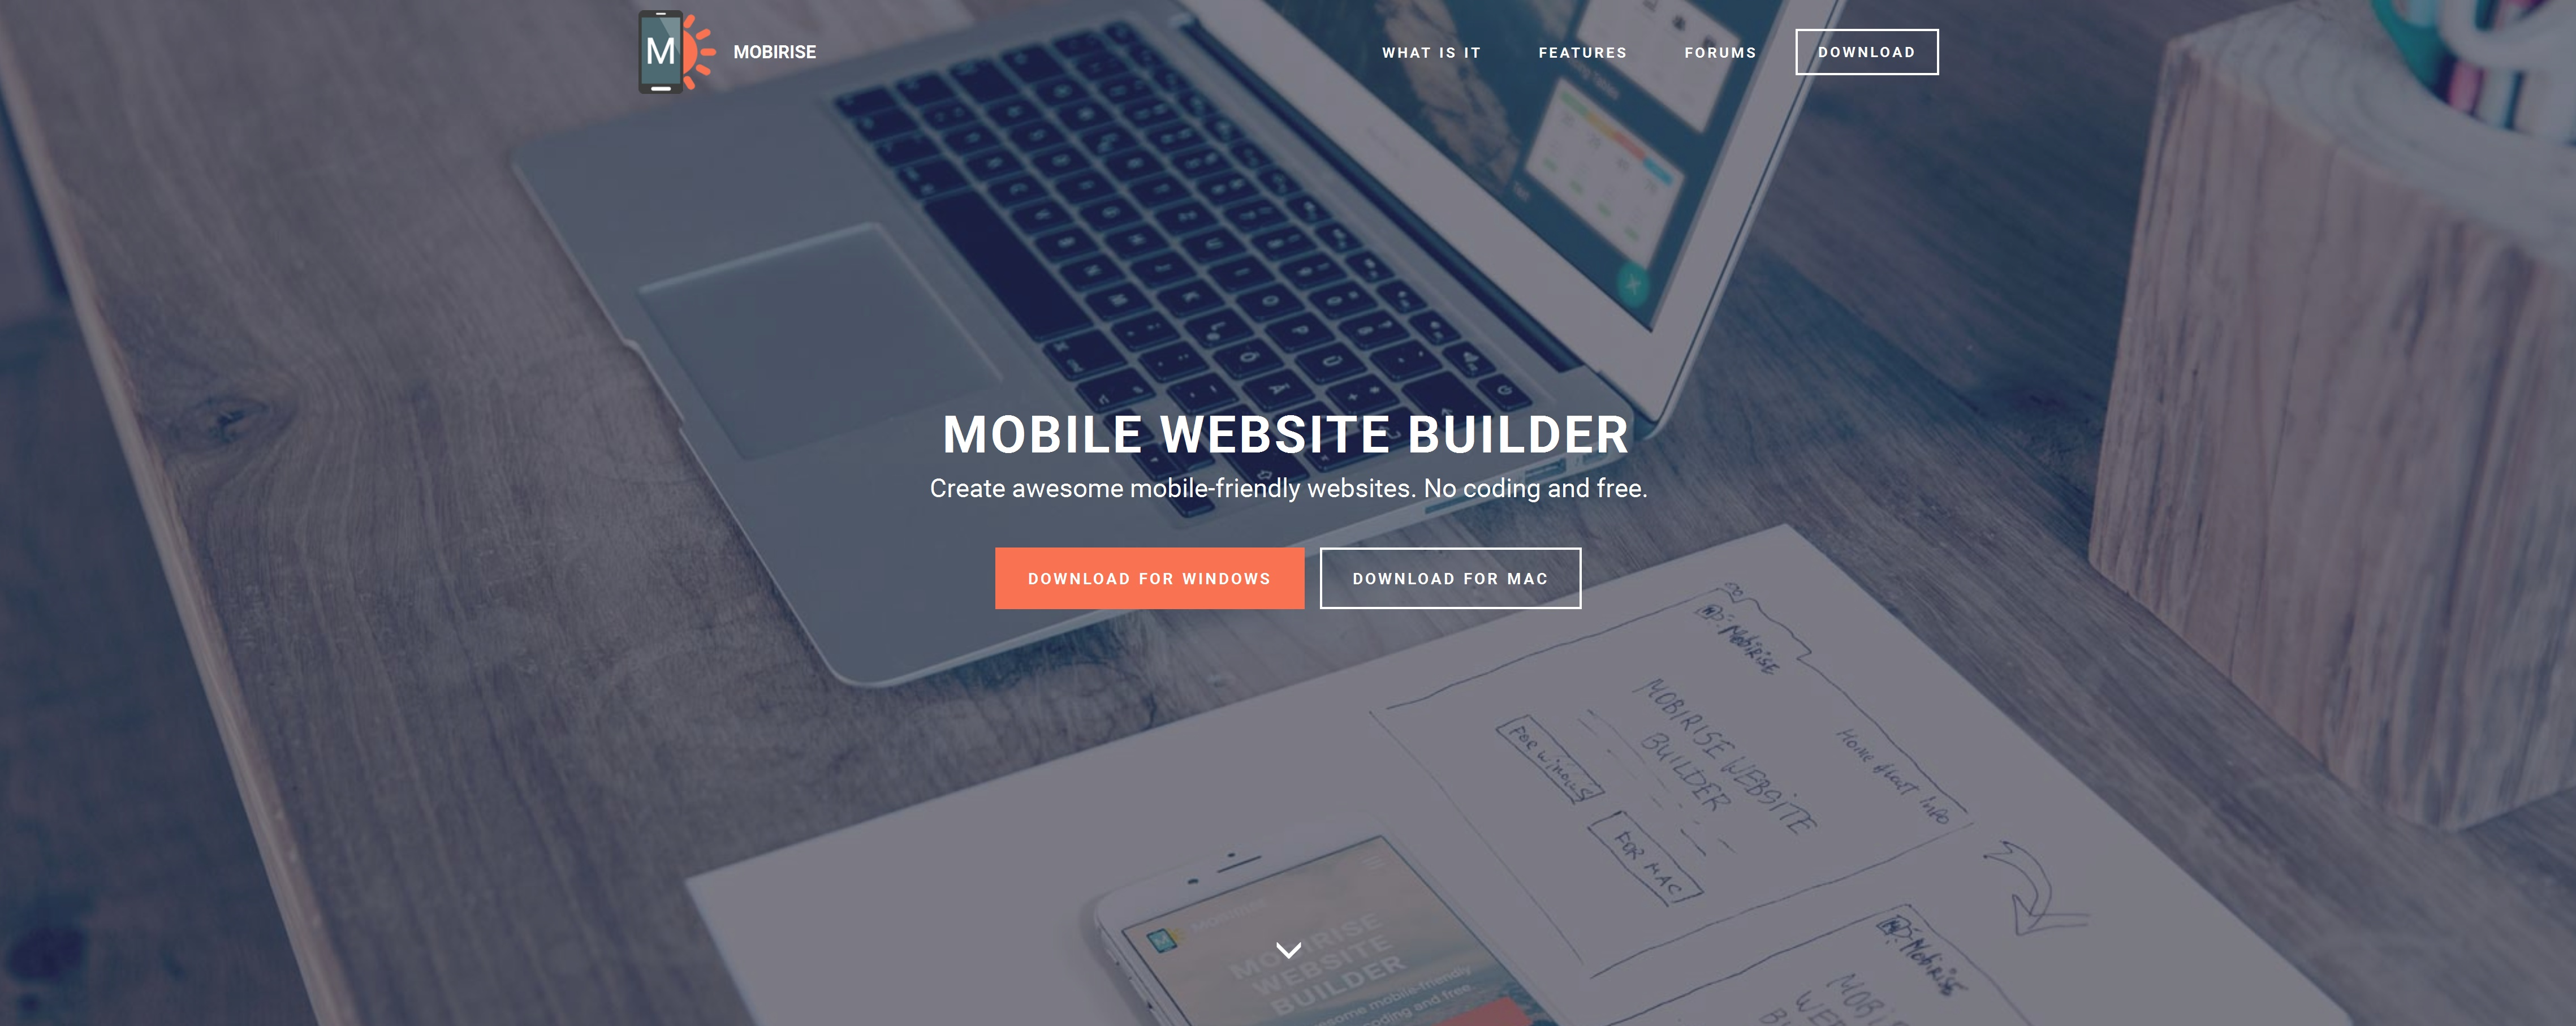 Mobile Website Maker Review